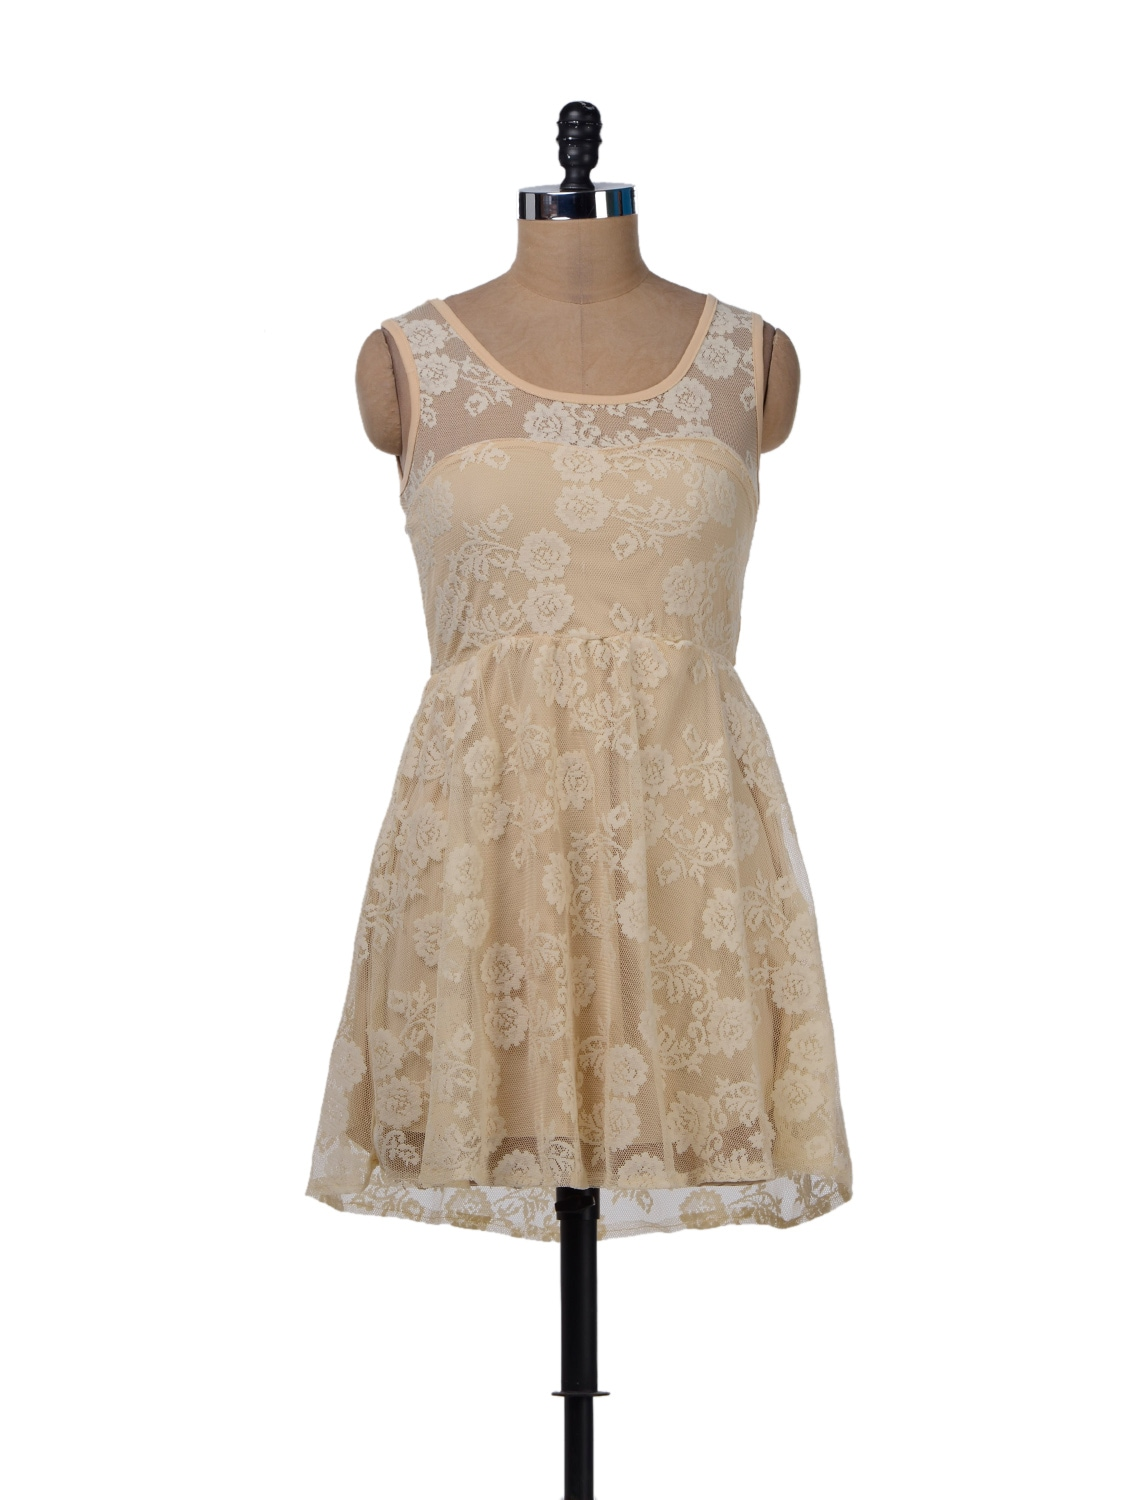 Sophisticated Lace Dress In Beige - Sanchey